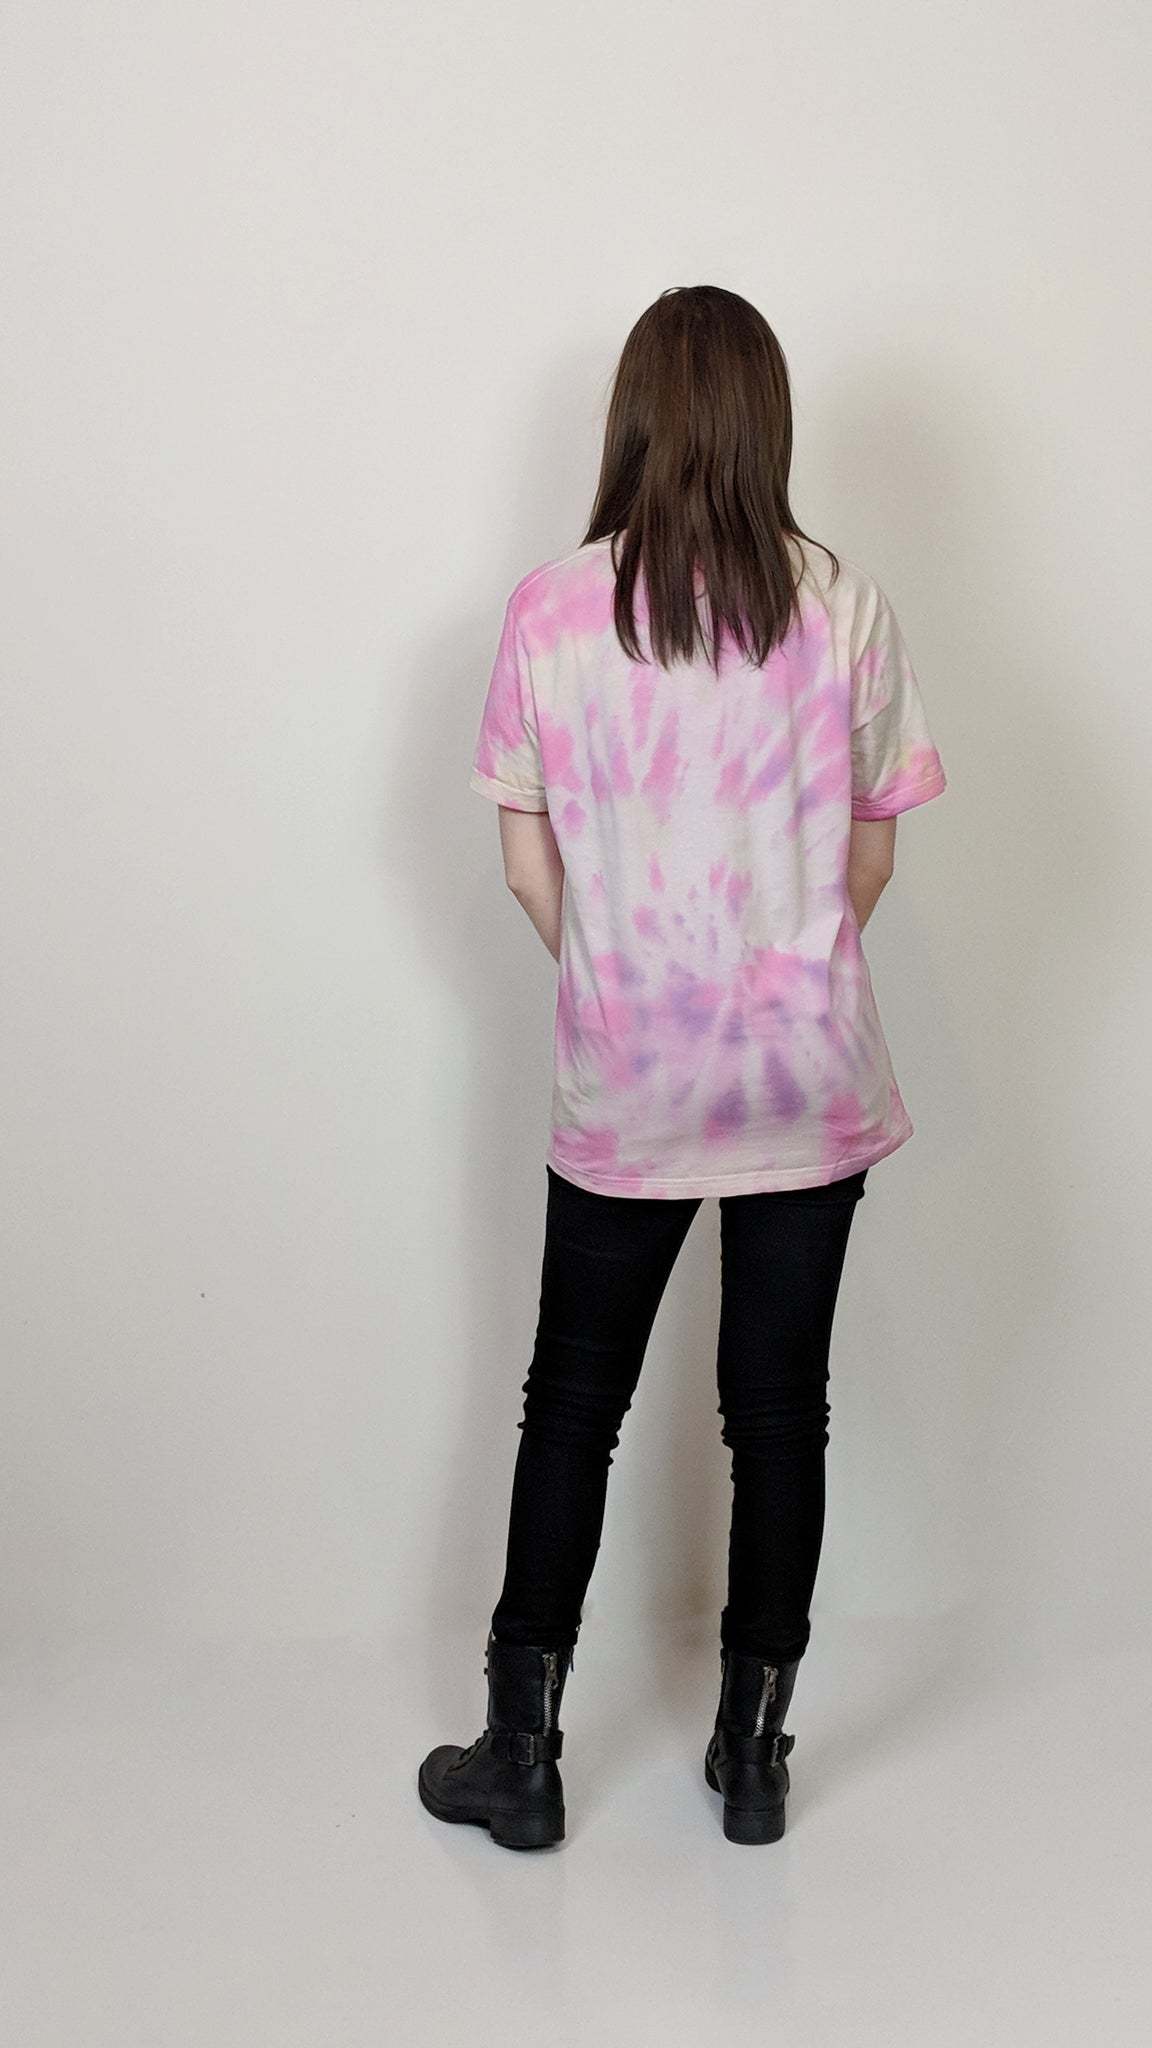 Strawberry n\' Cream - Climate Neutral Tie Dye – Local Aesthetic